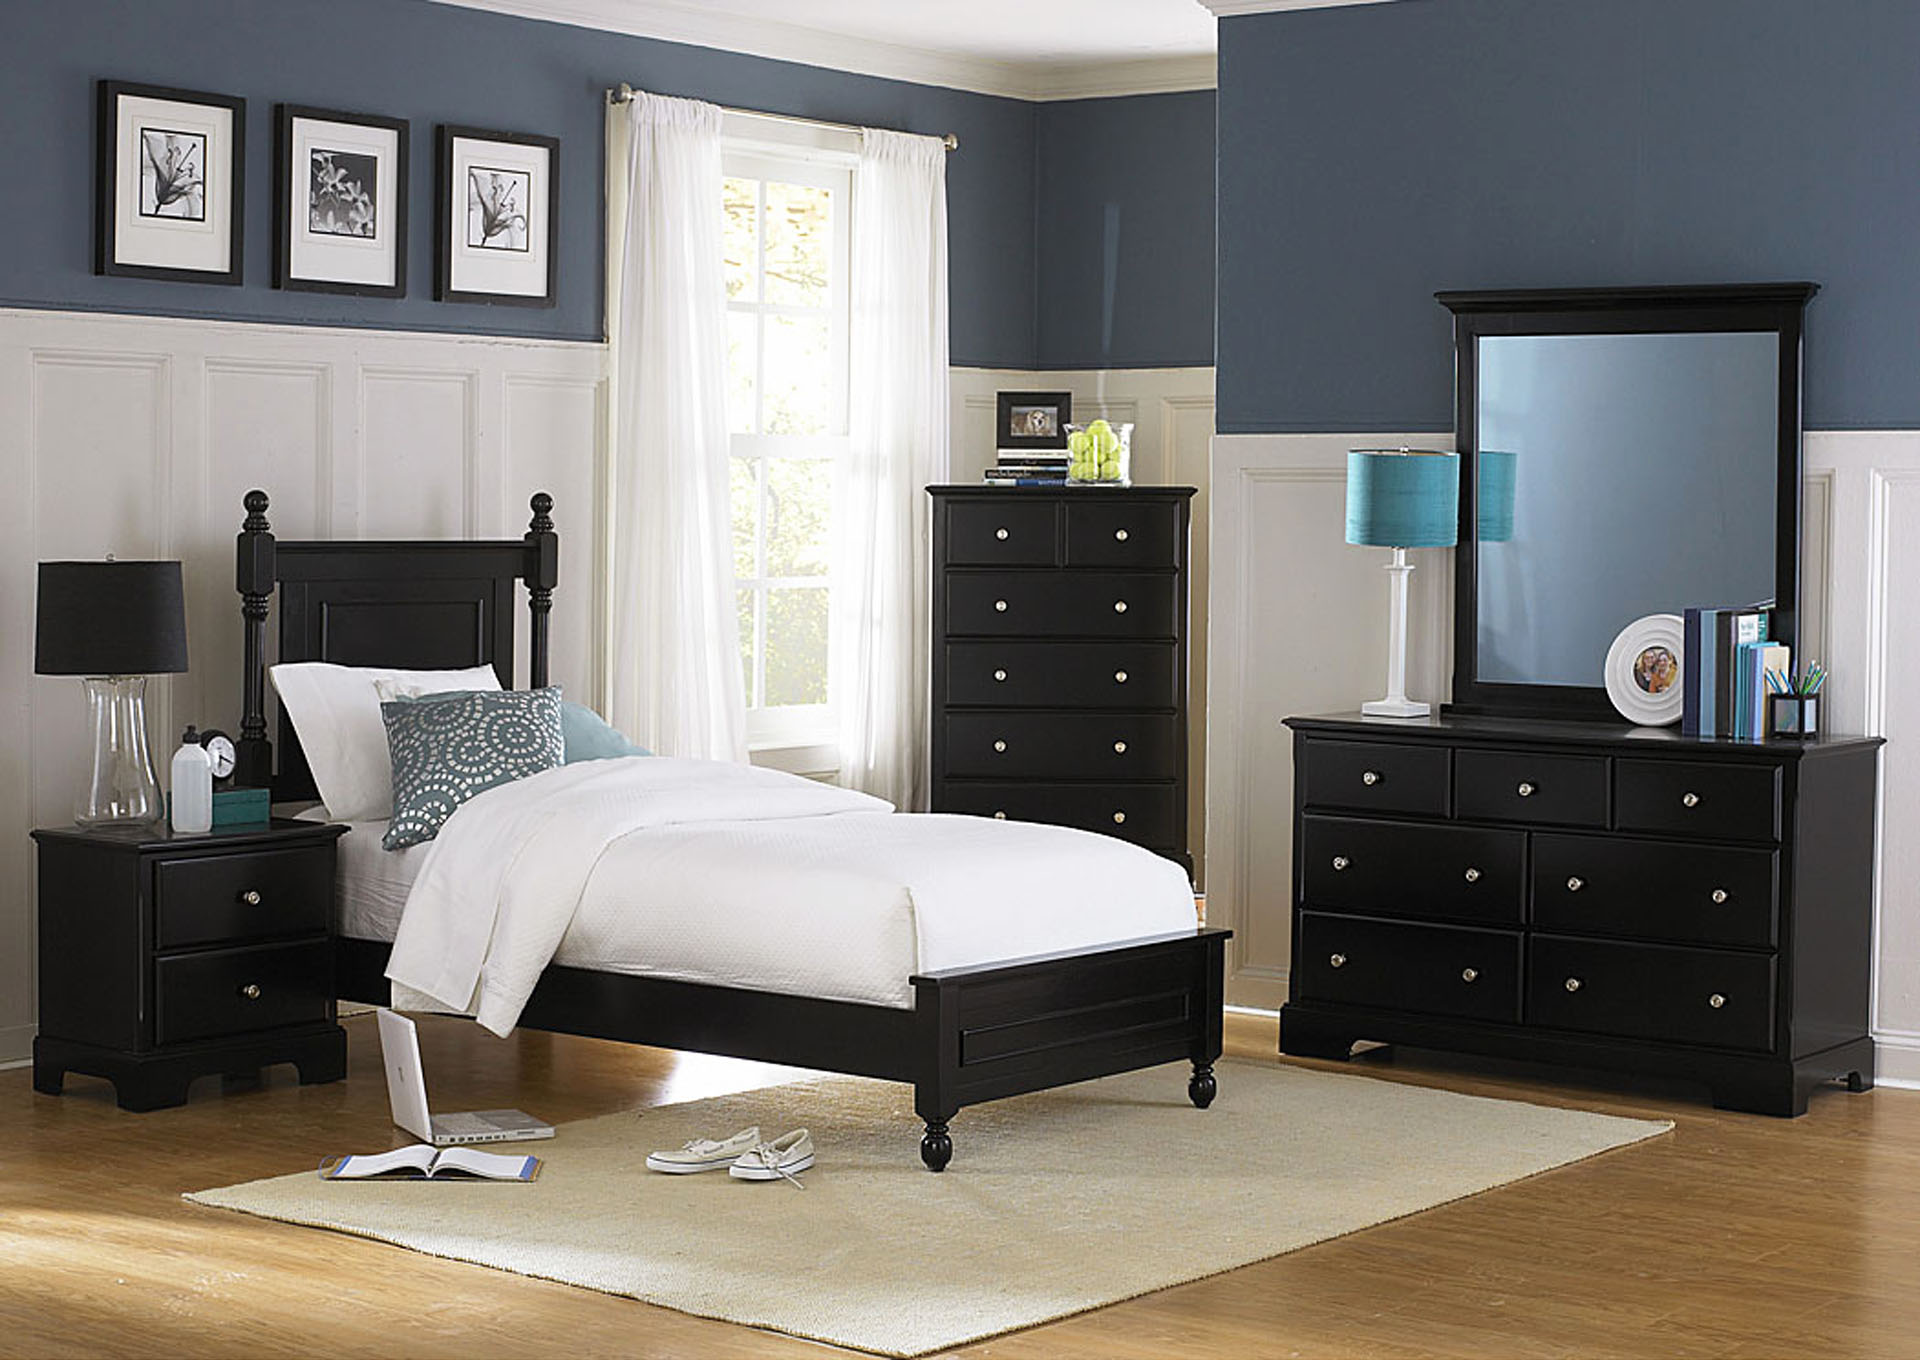 Morelle Black Full Bed,Homelegance